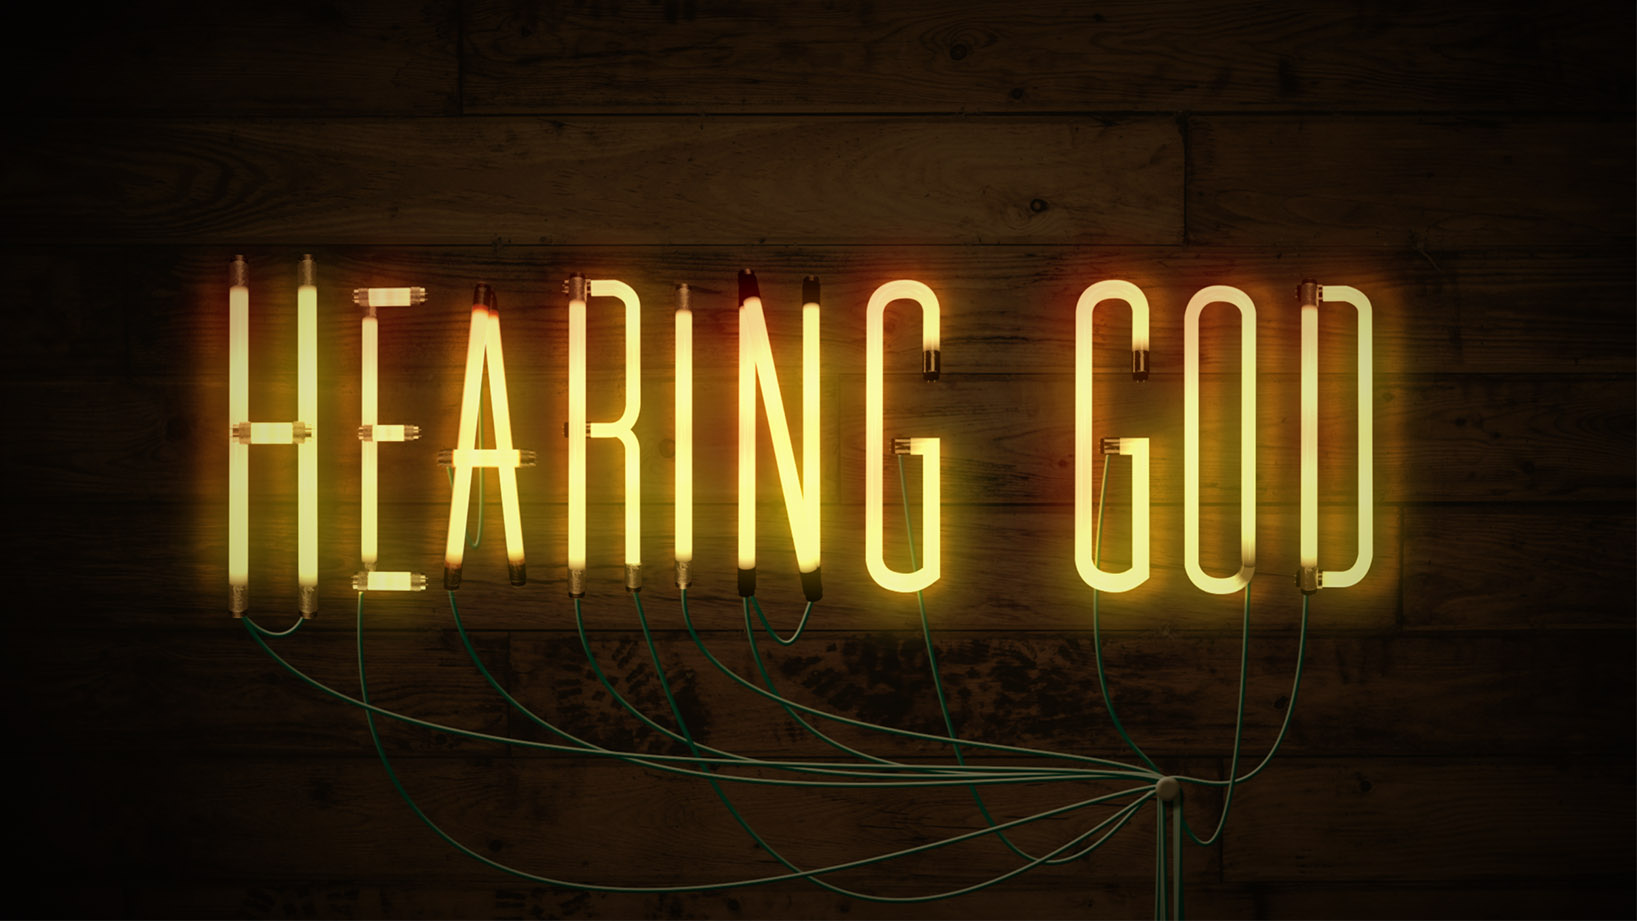 Hearing God - Hearing The Voice of God Made Easy